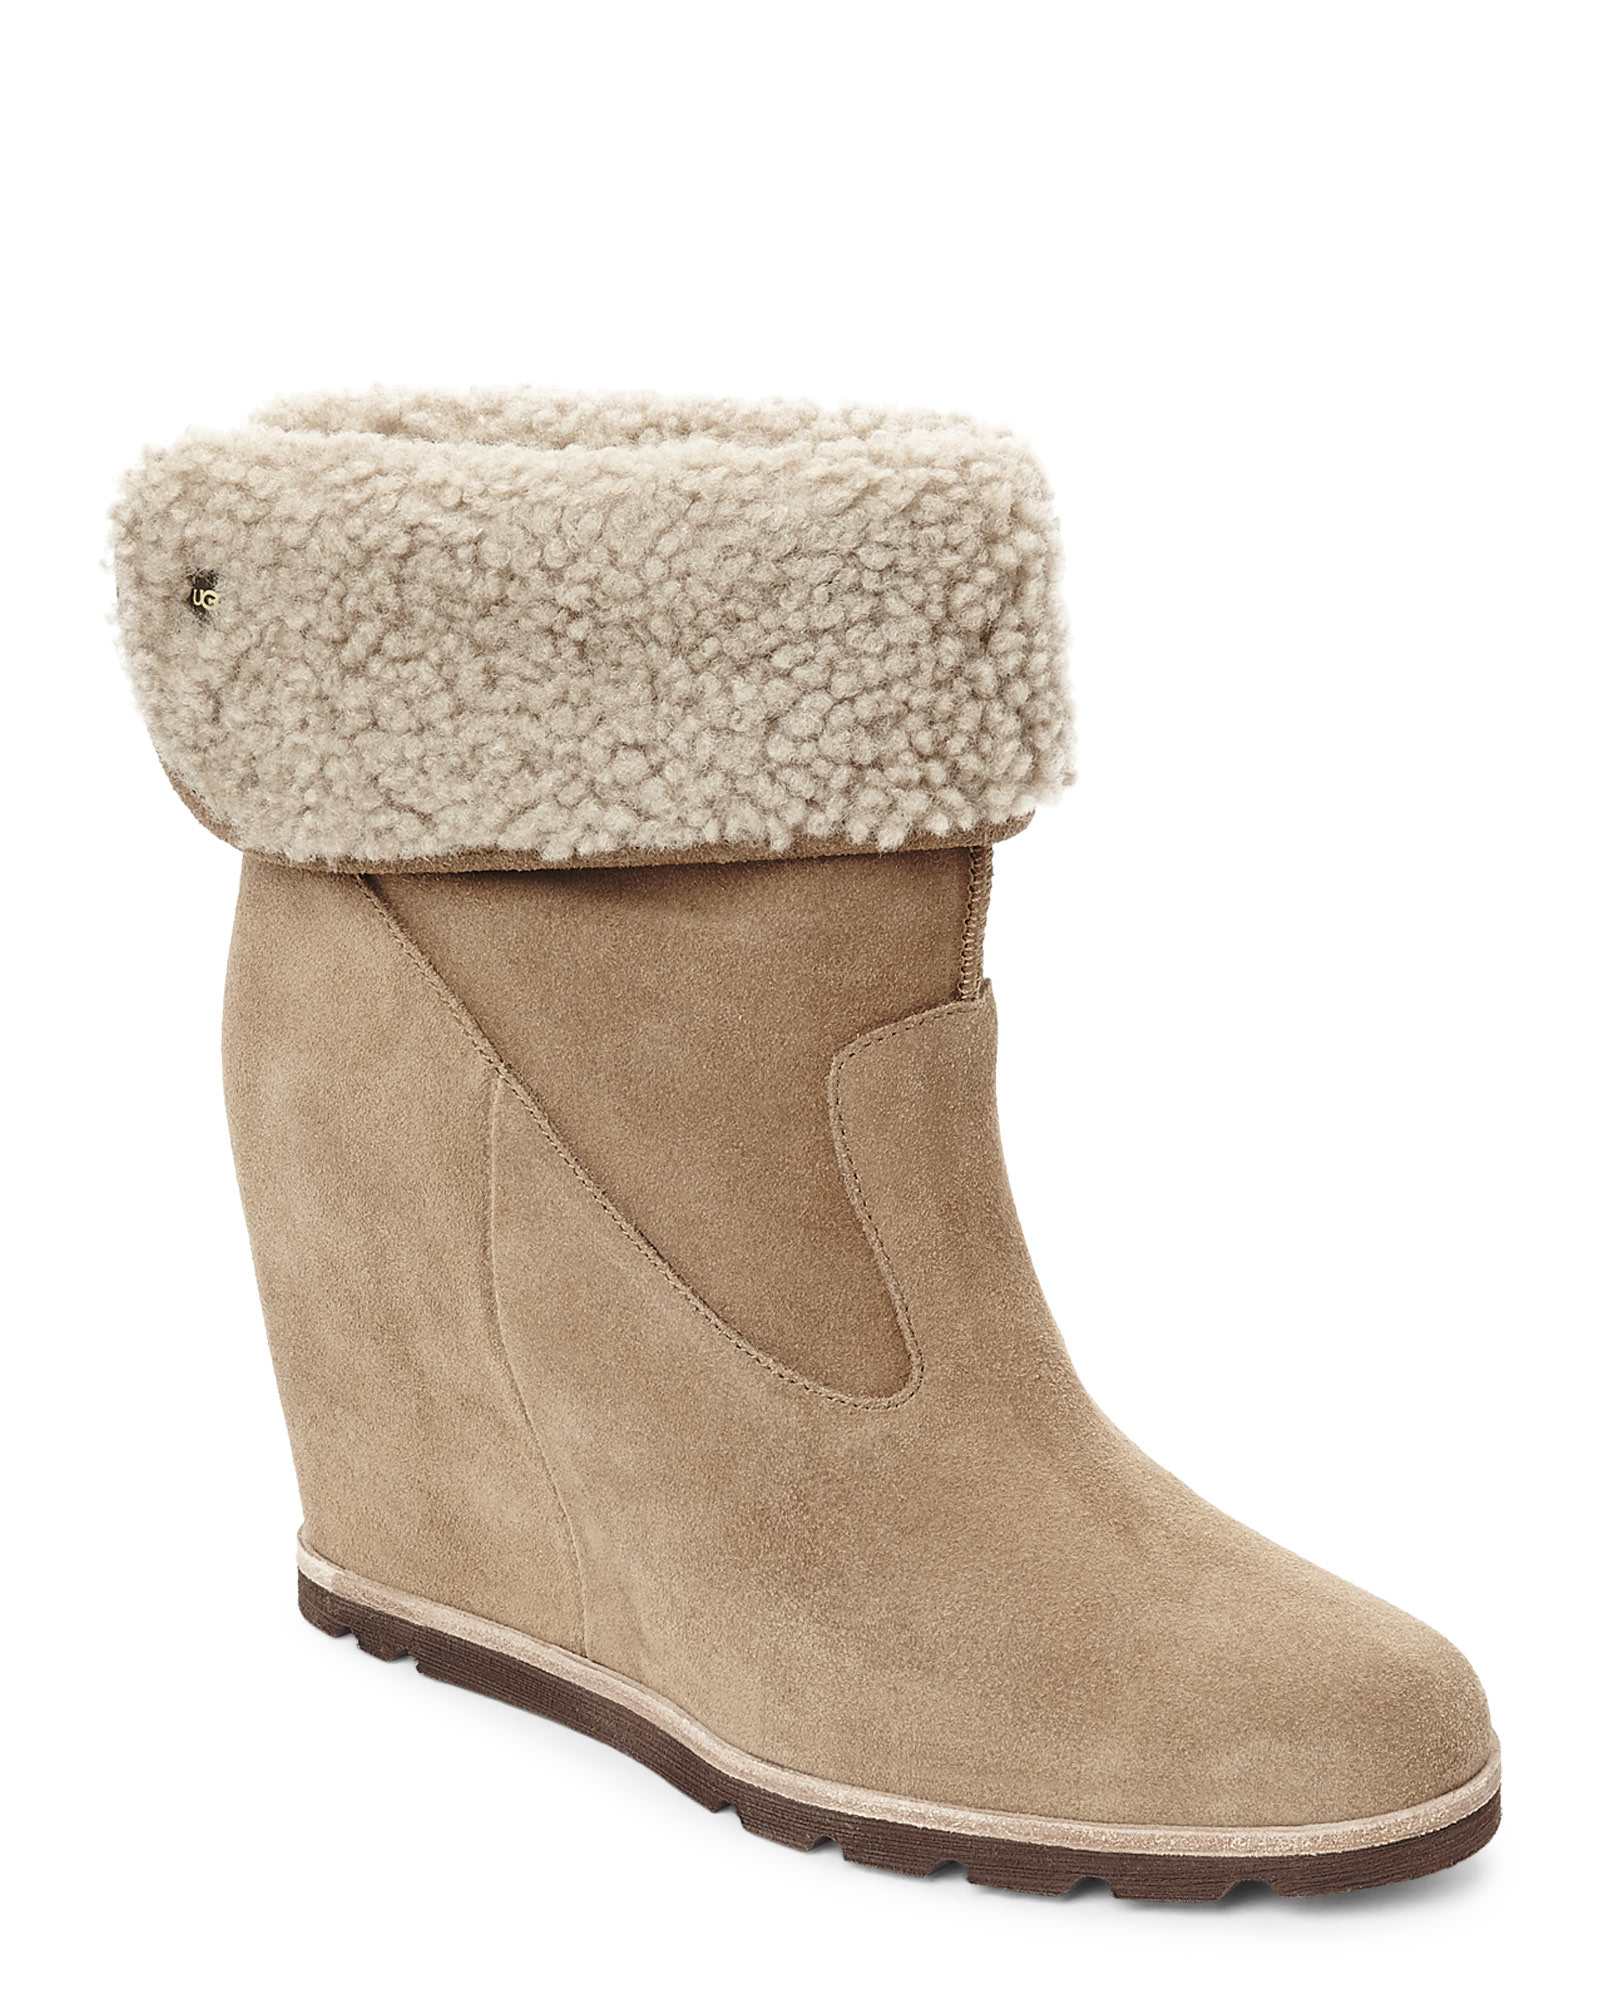 d9095c0c1f8 UGG Natural Chestnut Kyra Wedge Boots